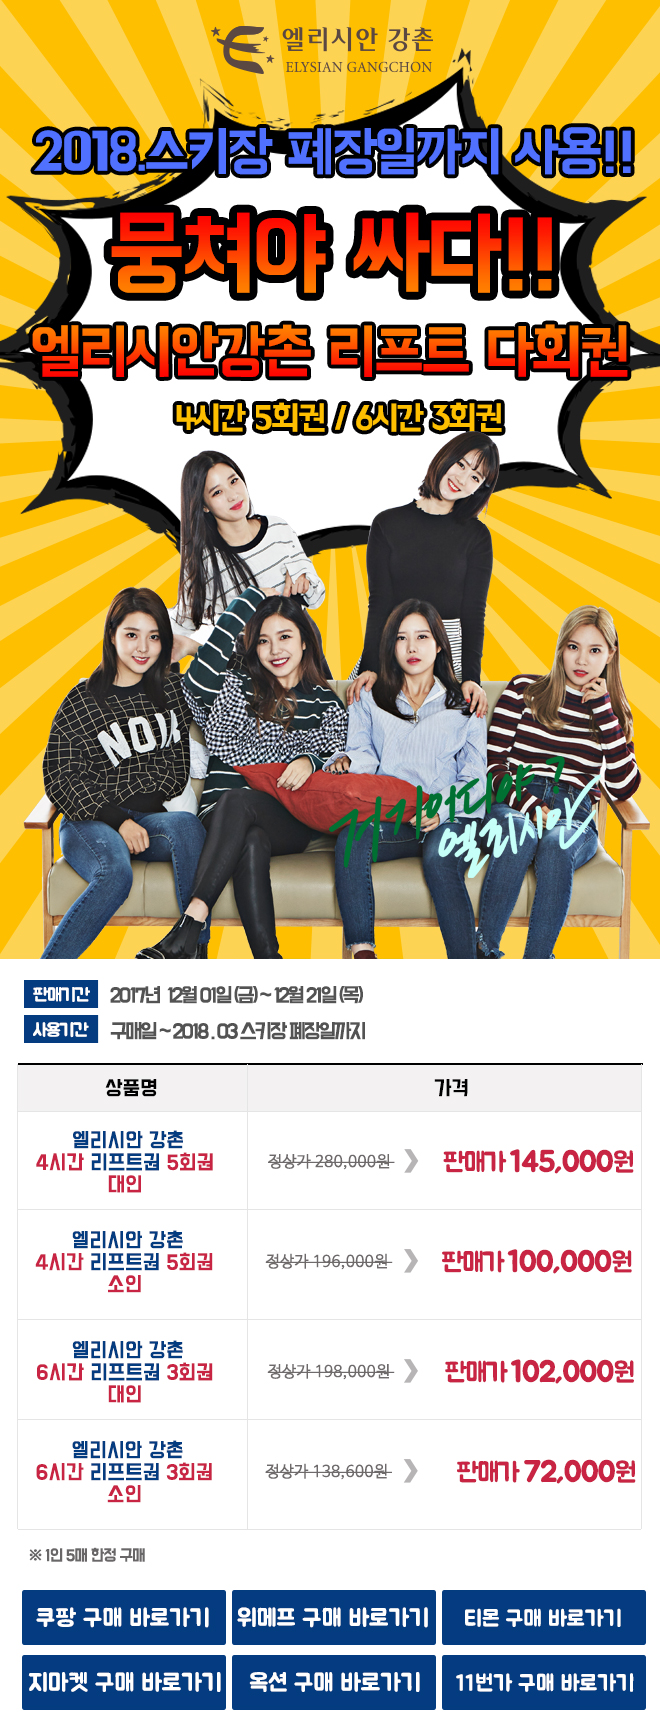 Tags: JTG Entertainment, K-Pop, Berry Good, Kang Sehyung, Daye, Johyun, Seoyul, Gowoon, Taeha, Sitting On Couch, Full Group, Blonde Hair